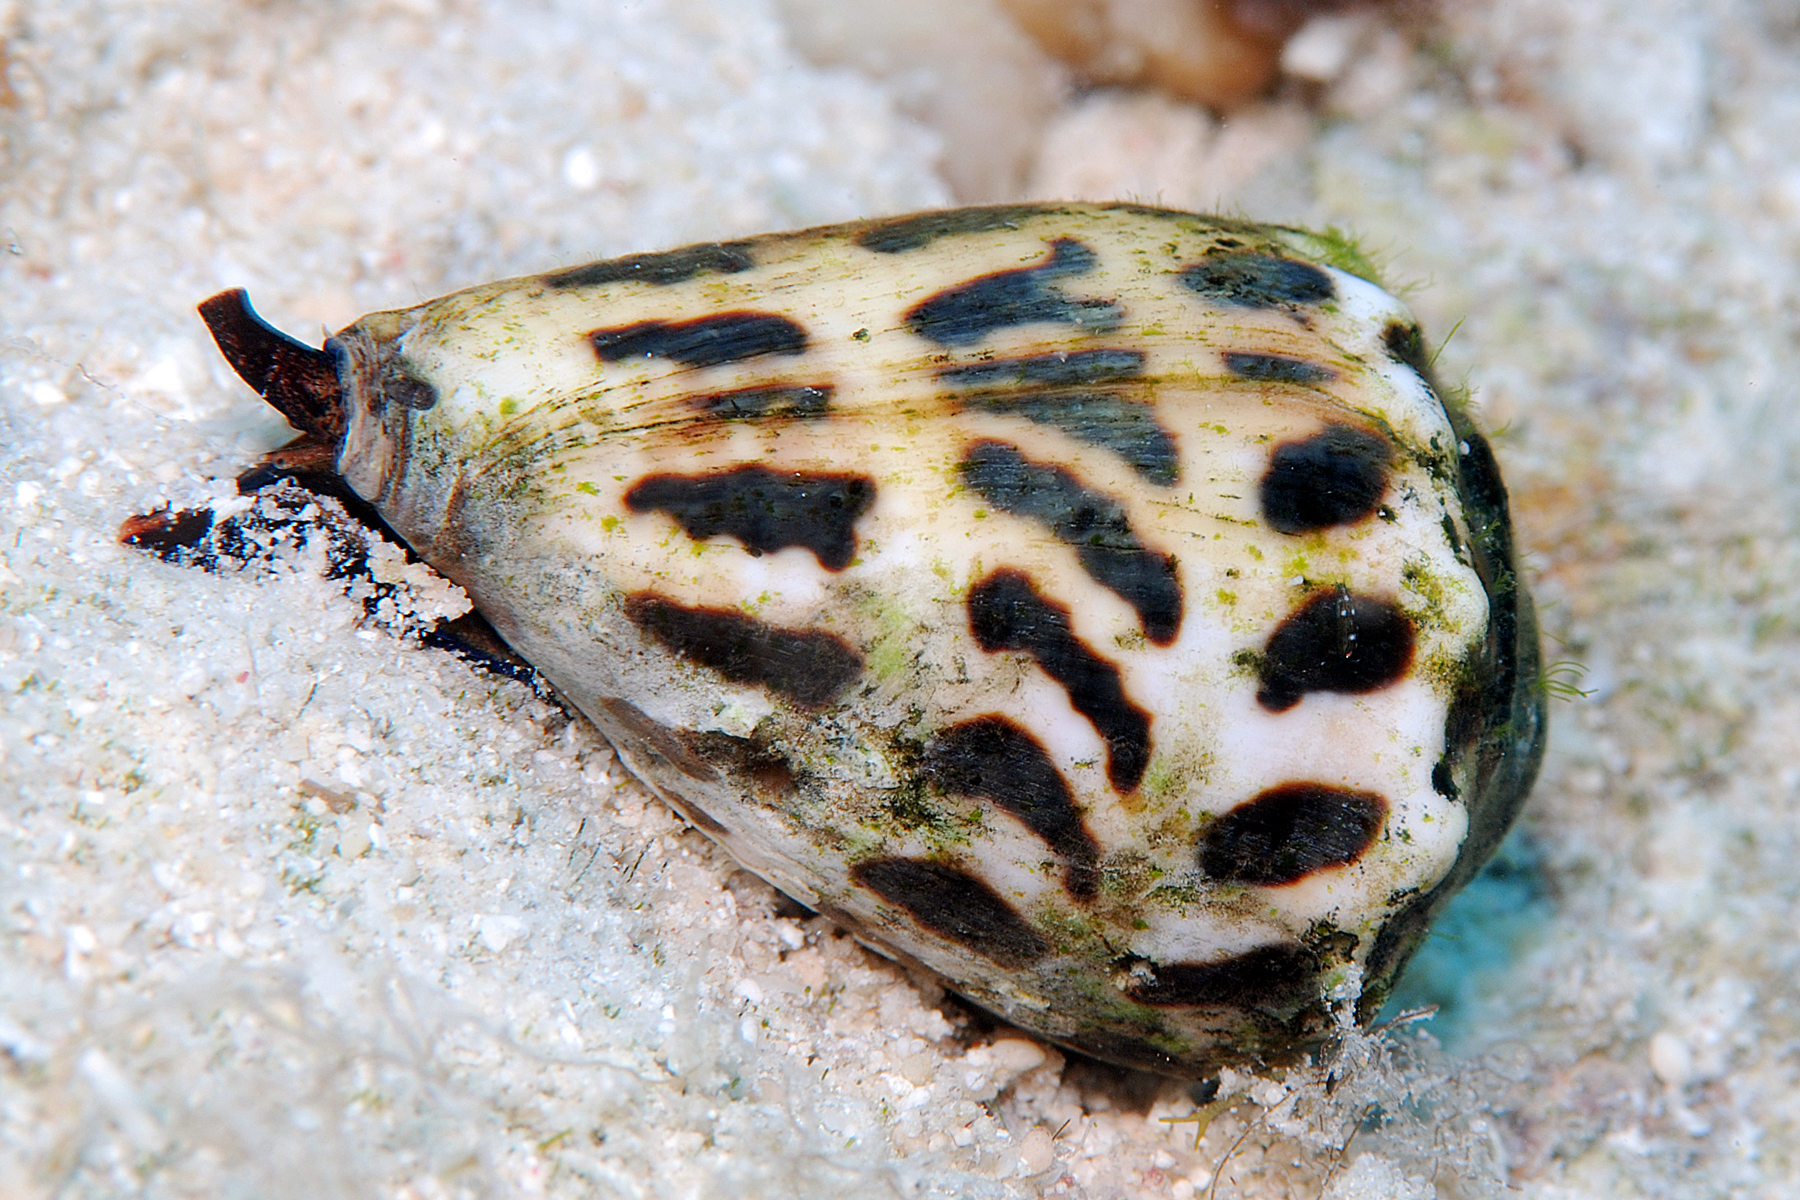 A Hebrew cone snail, Conus ebraeus, searching for food on a reef. Populations of C. ebraeus refine their venom based on the the composition and diversity of local prey species. Image credit: Jeanette Johnson